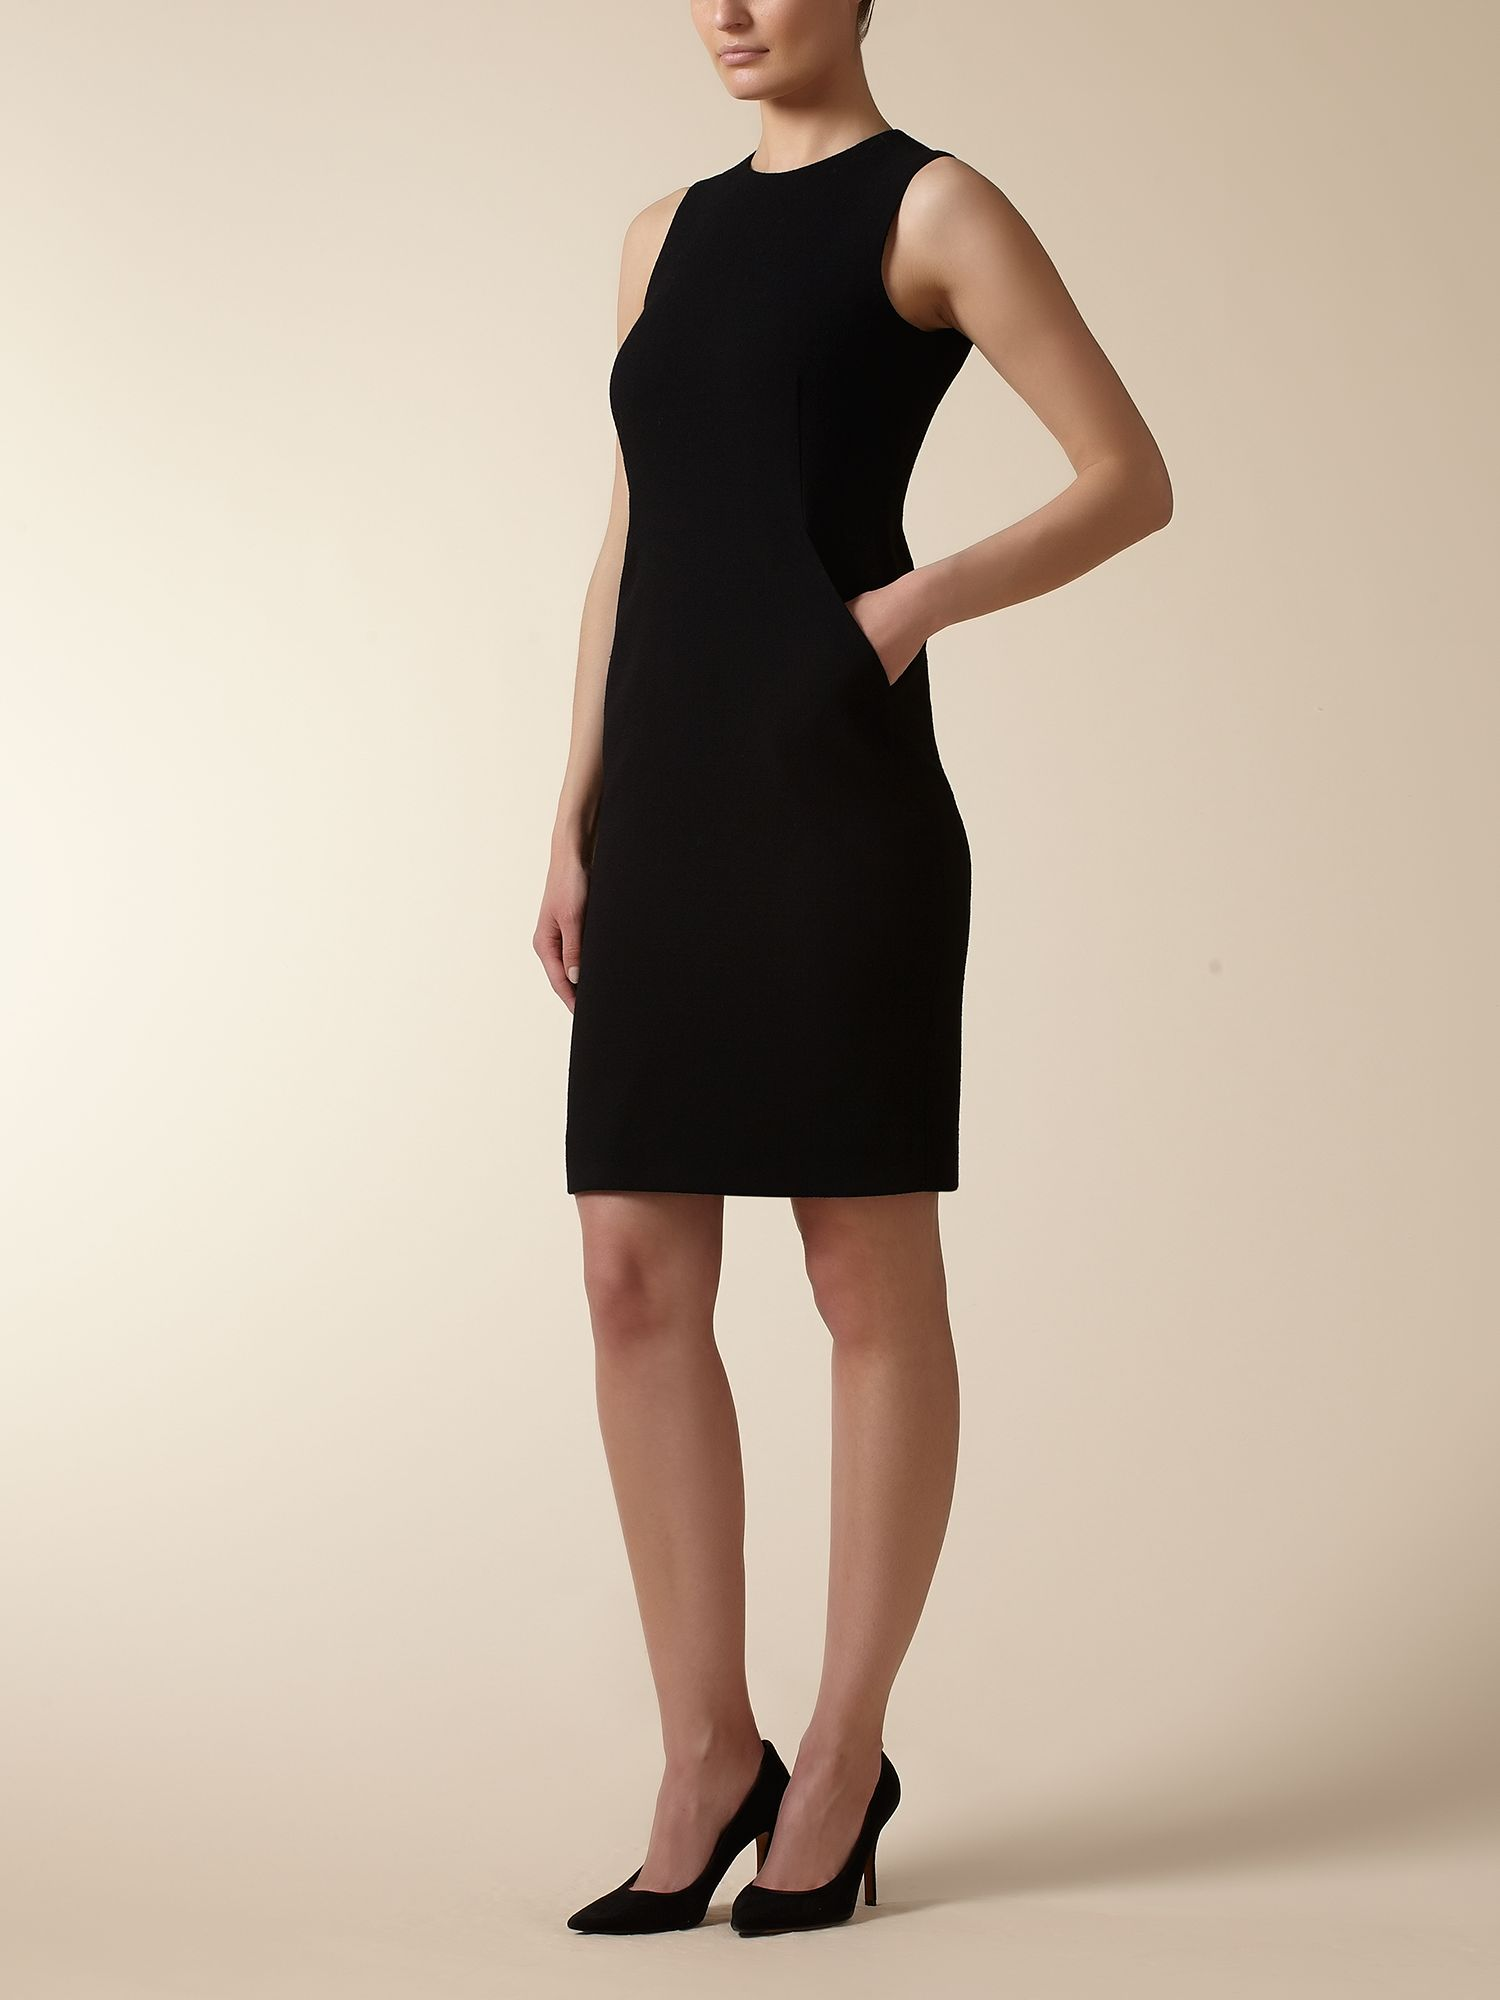 Jaeger: Wool/Crepe Sleeveless Dress